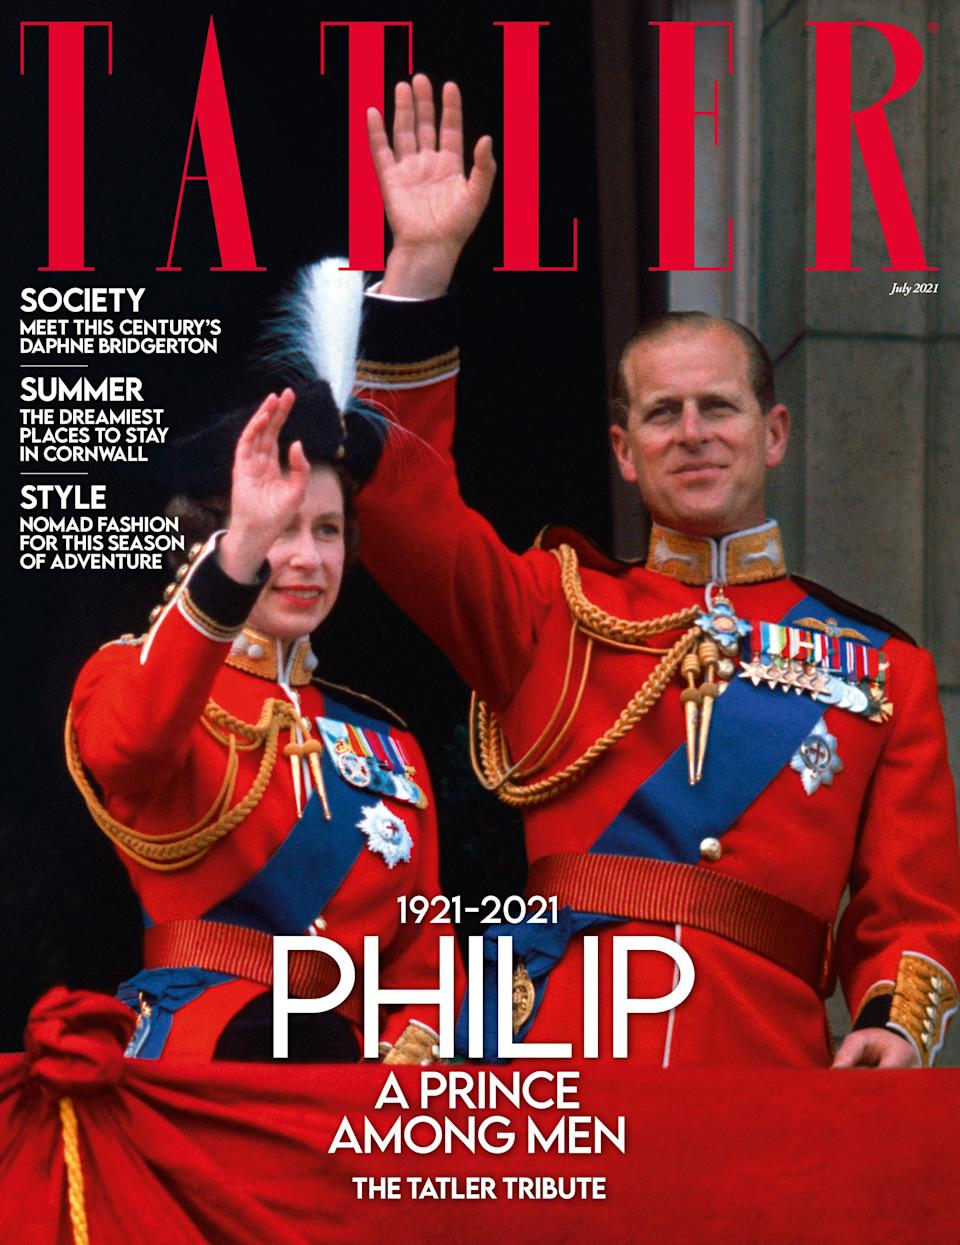 The July edition of Tatler